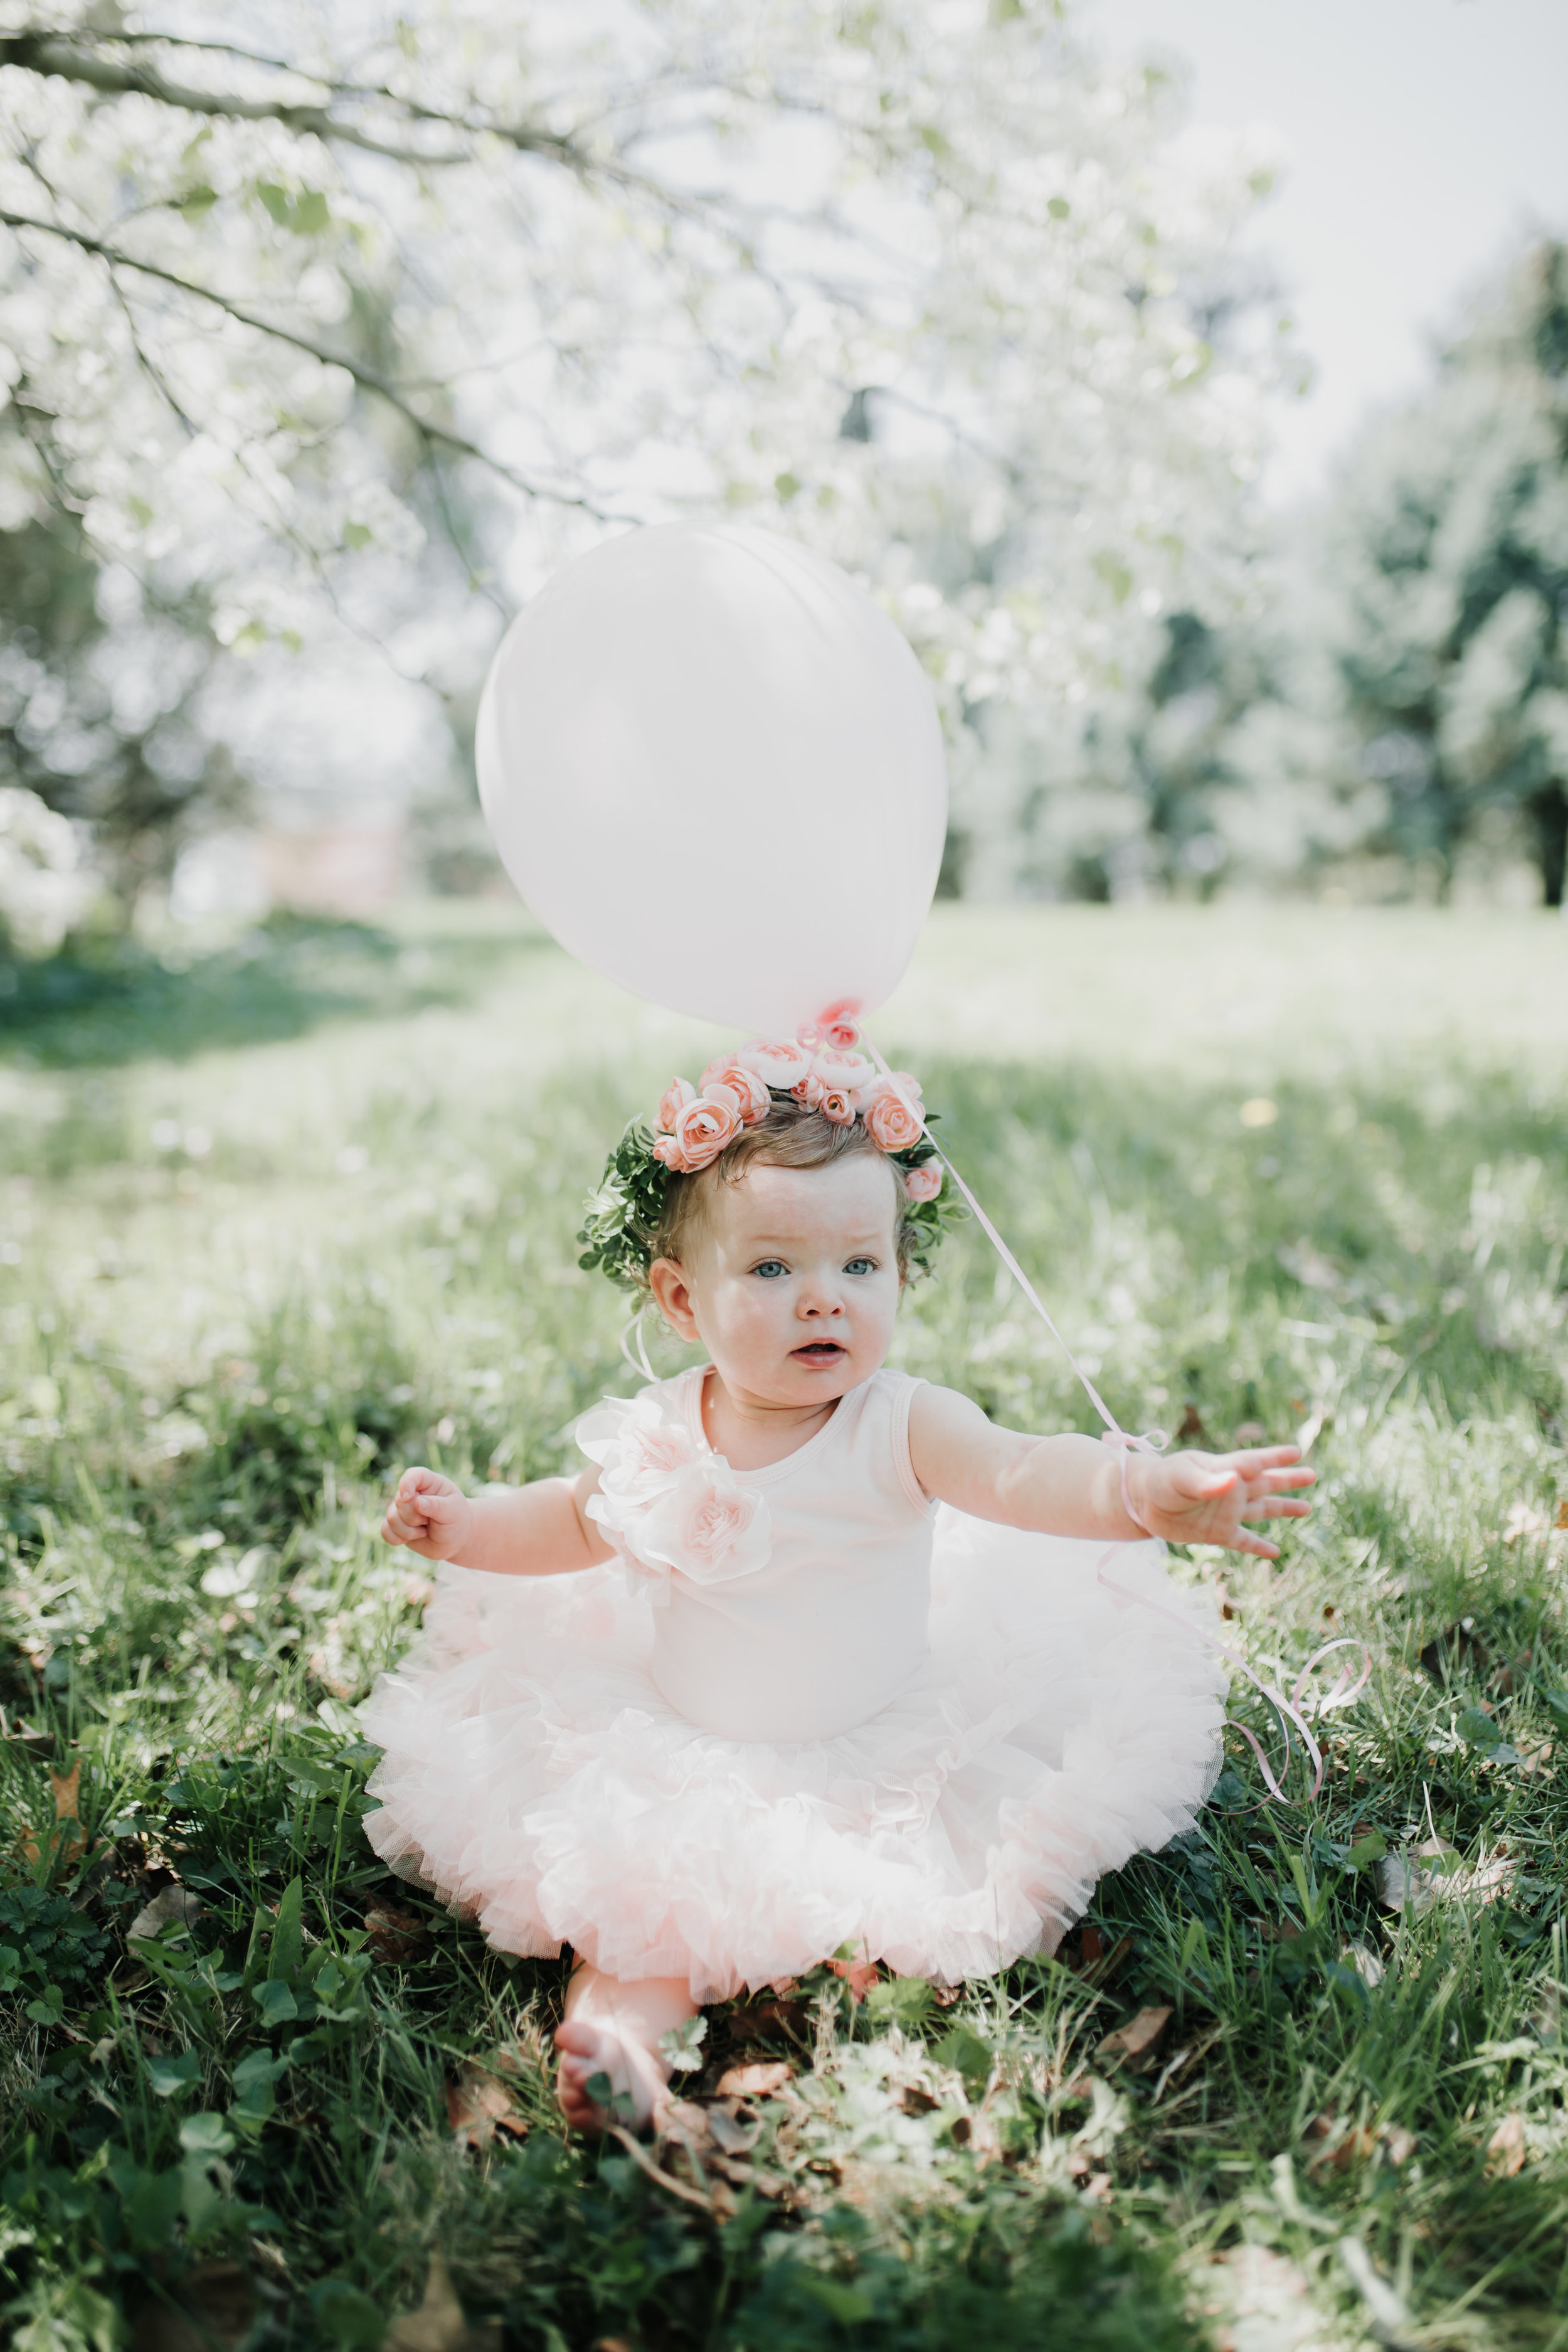 Johanna 1-Year Photos - Nathaniel Jensen Photography-7.jpg